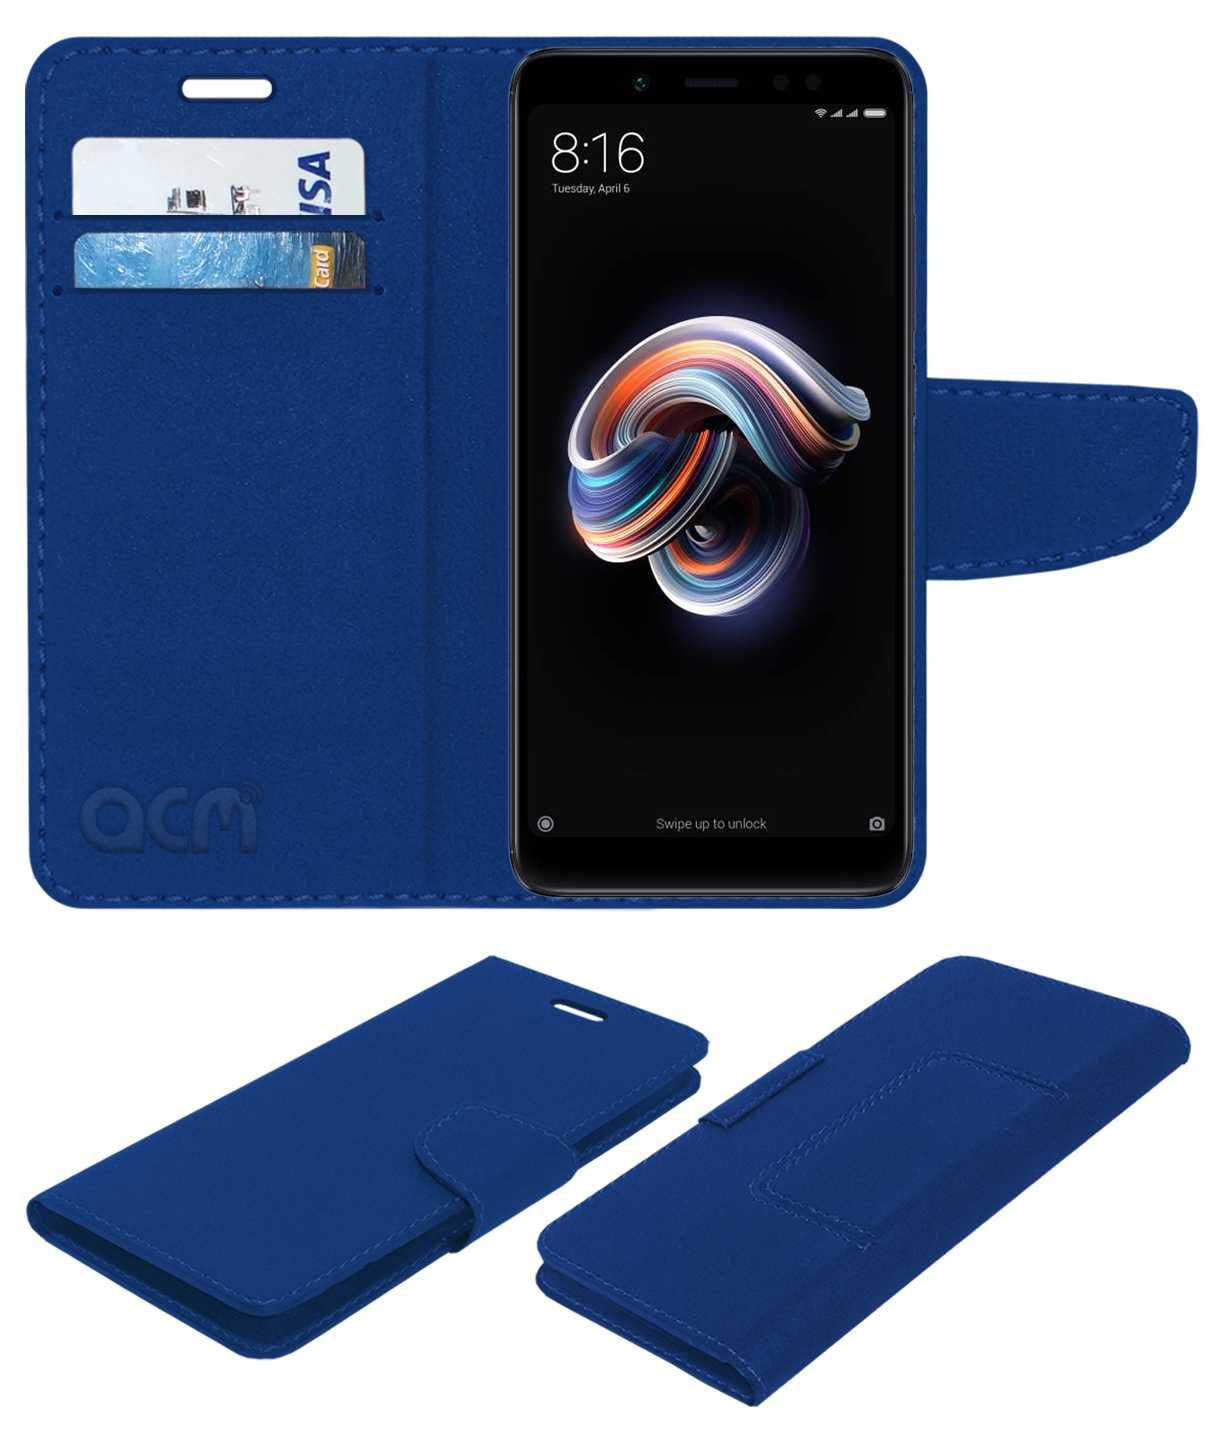 reputable site e637c b9676 Xiaomi Redmi Note 5 Pro Flip Cover by ACM - Blue